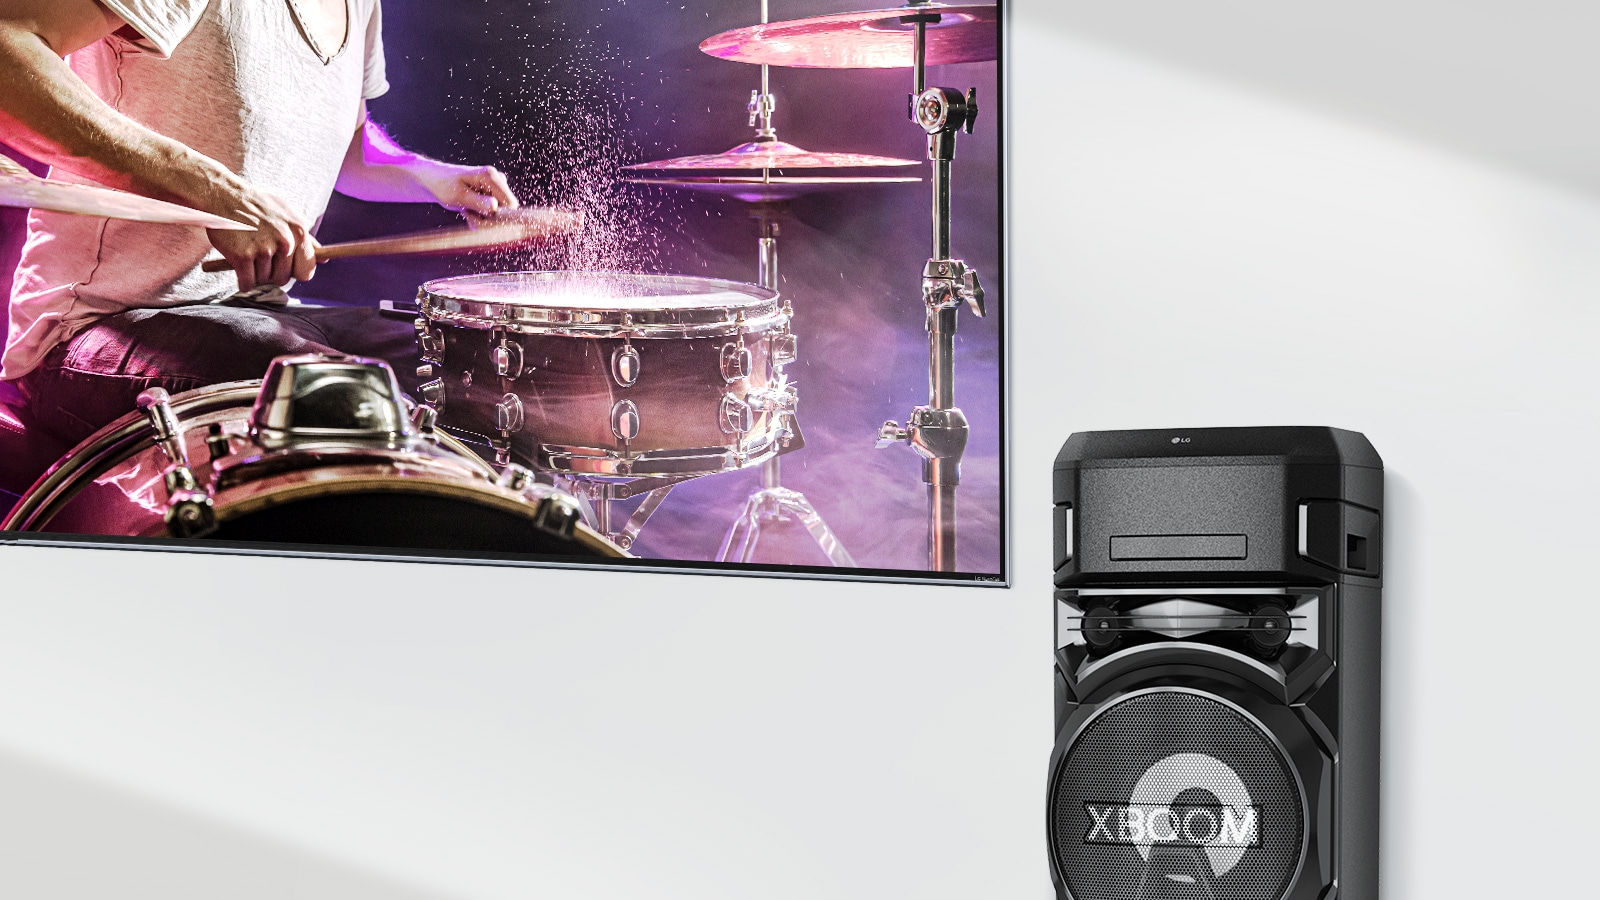 A TV is on a wall with an LG XBOOM to the right of it.